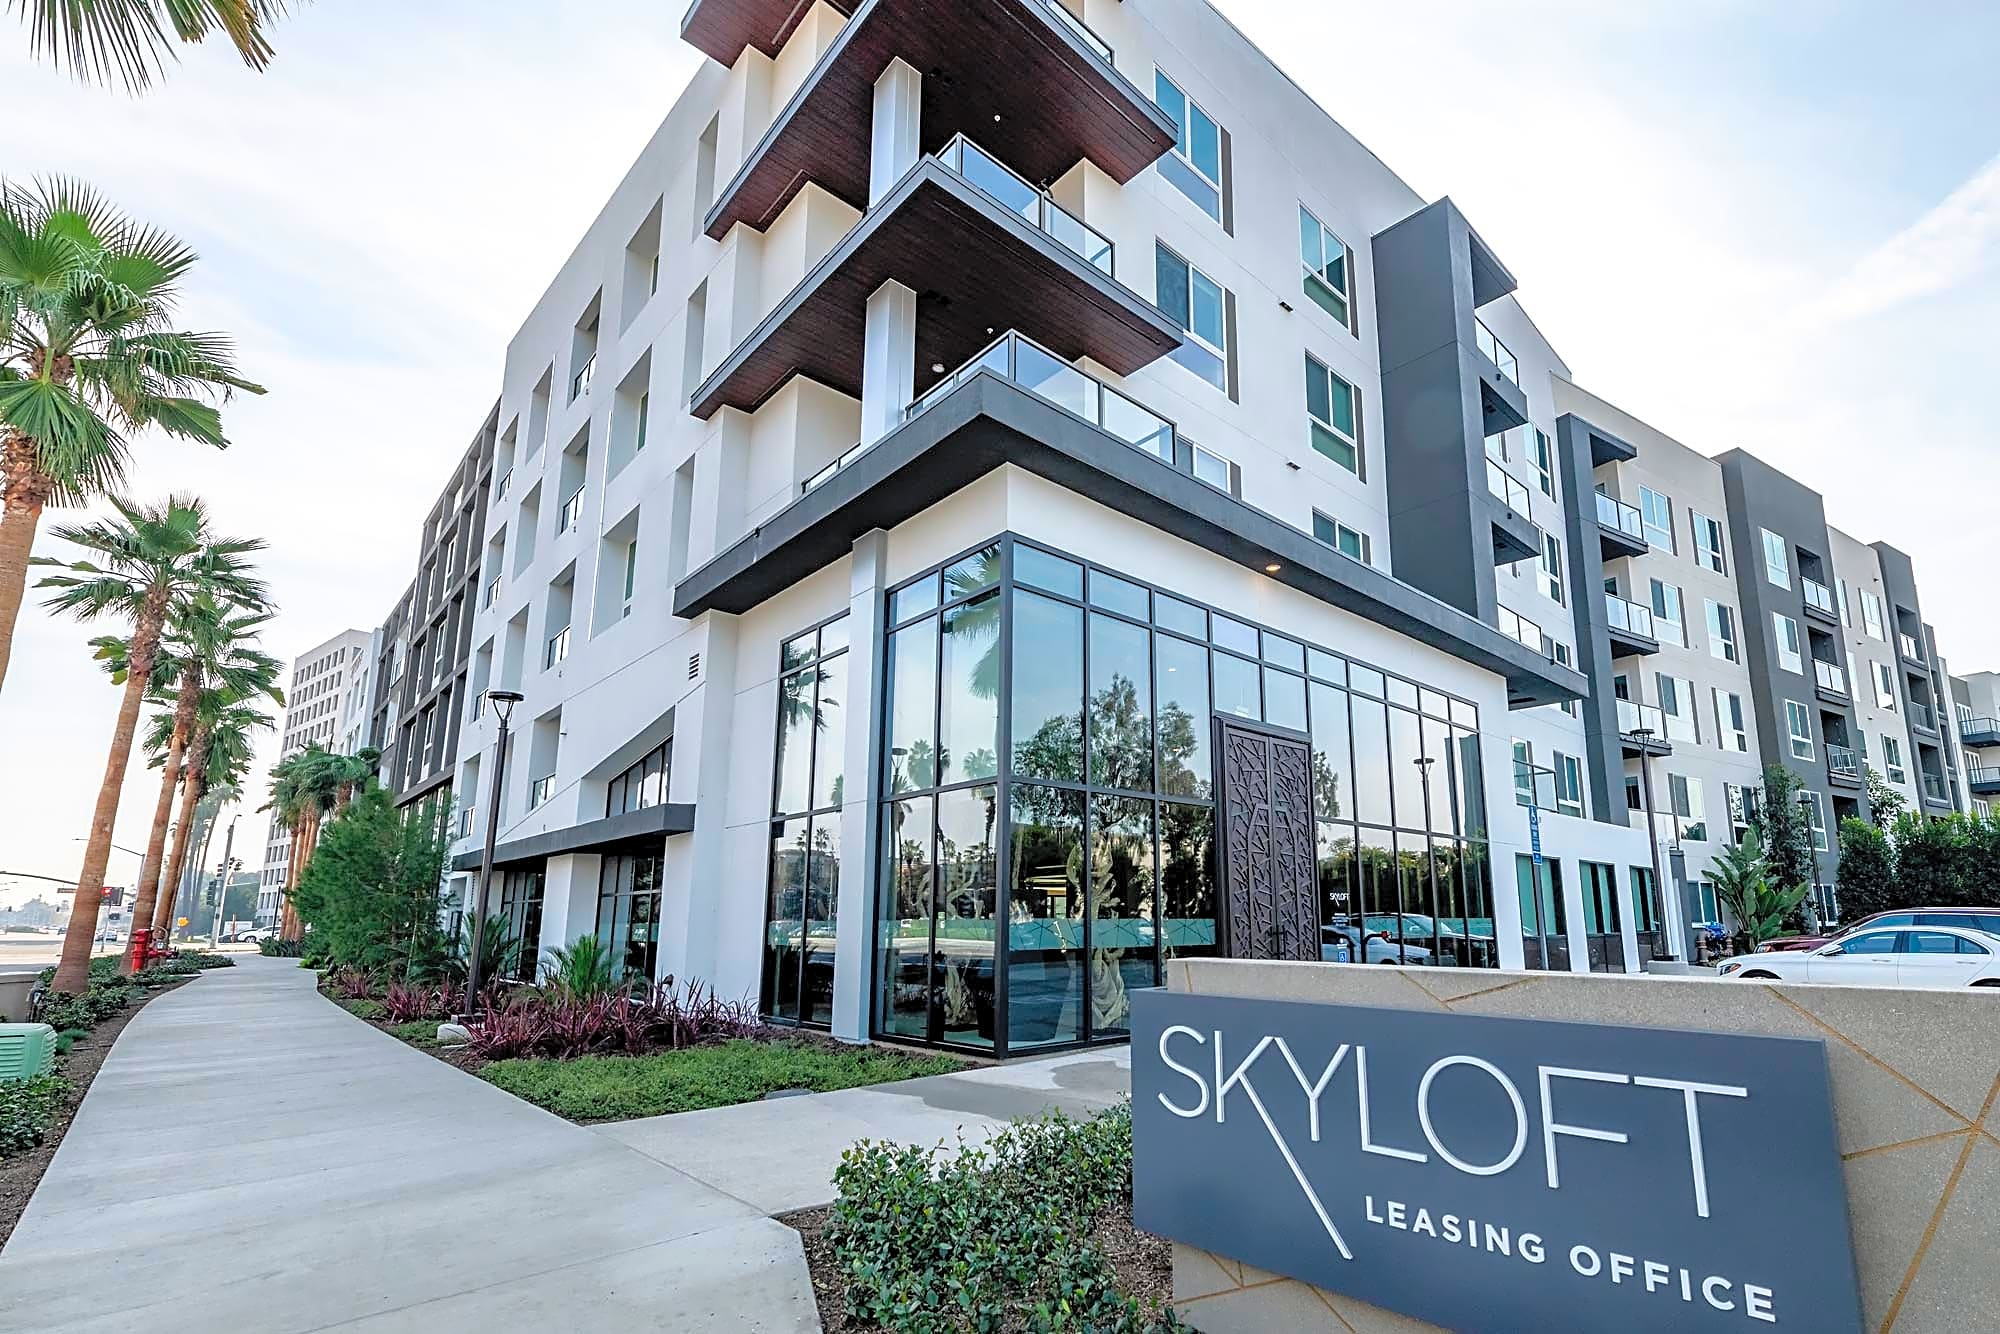 Apartments Near UC Irvine Skyloft for University of California - Irvine Students in Irvine, CA